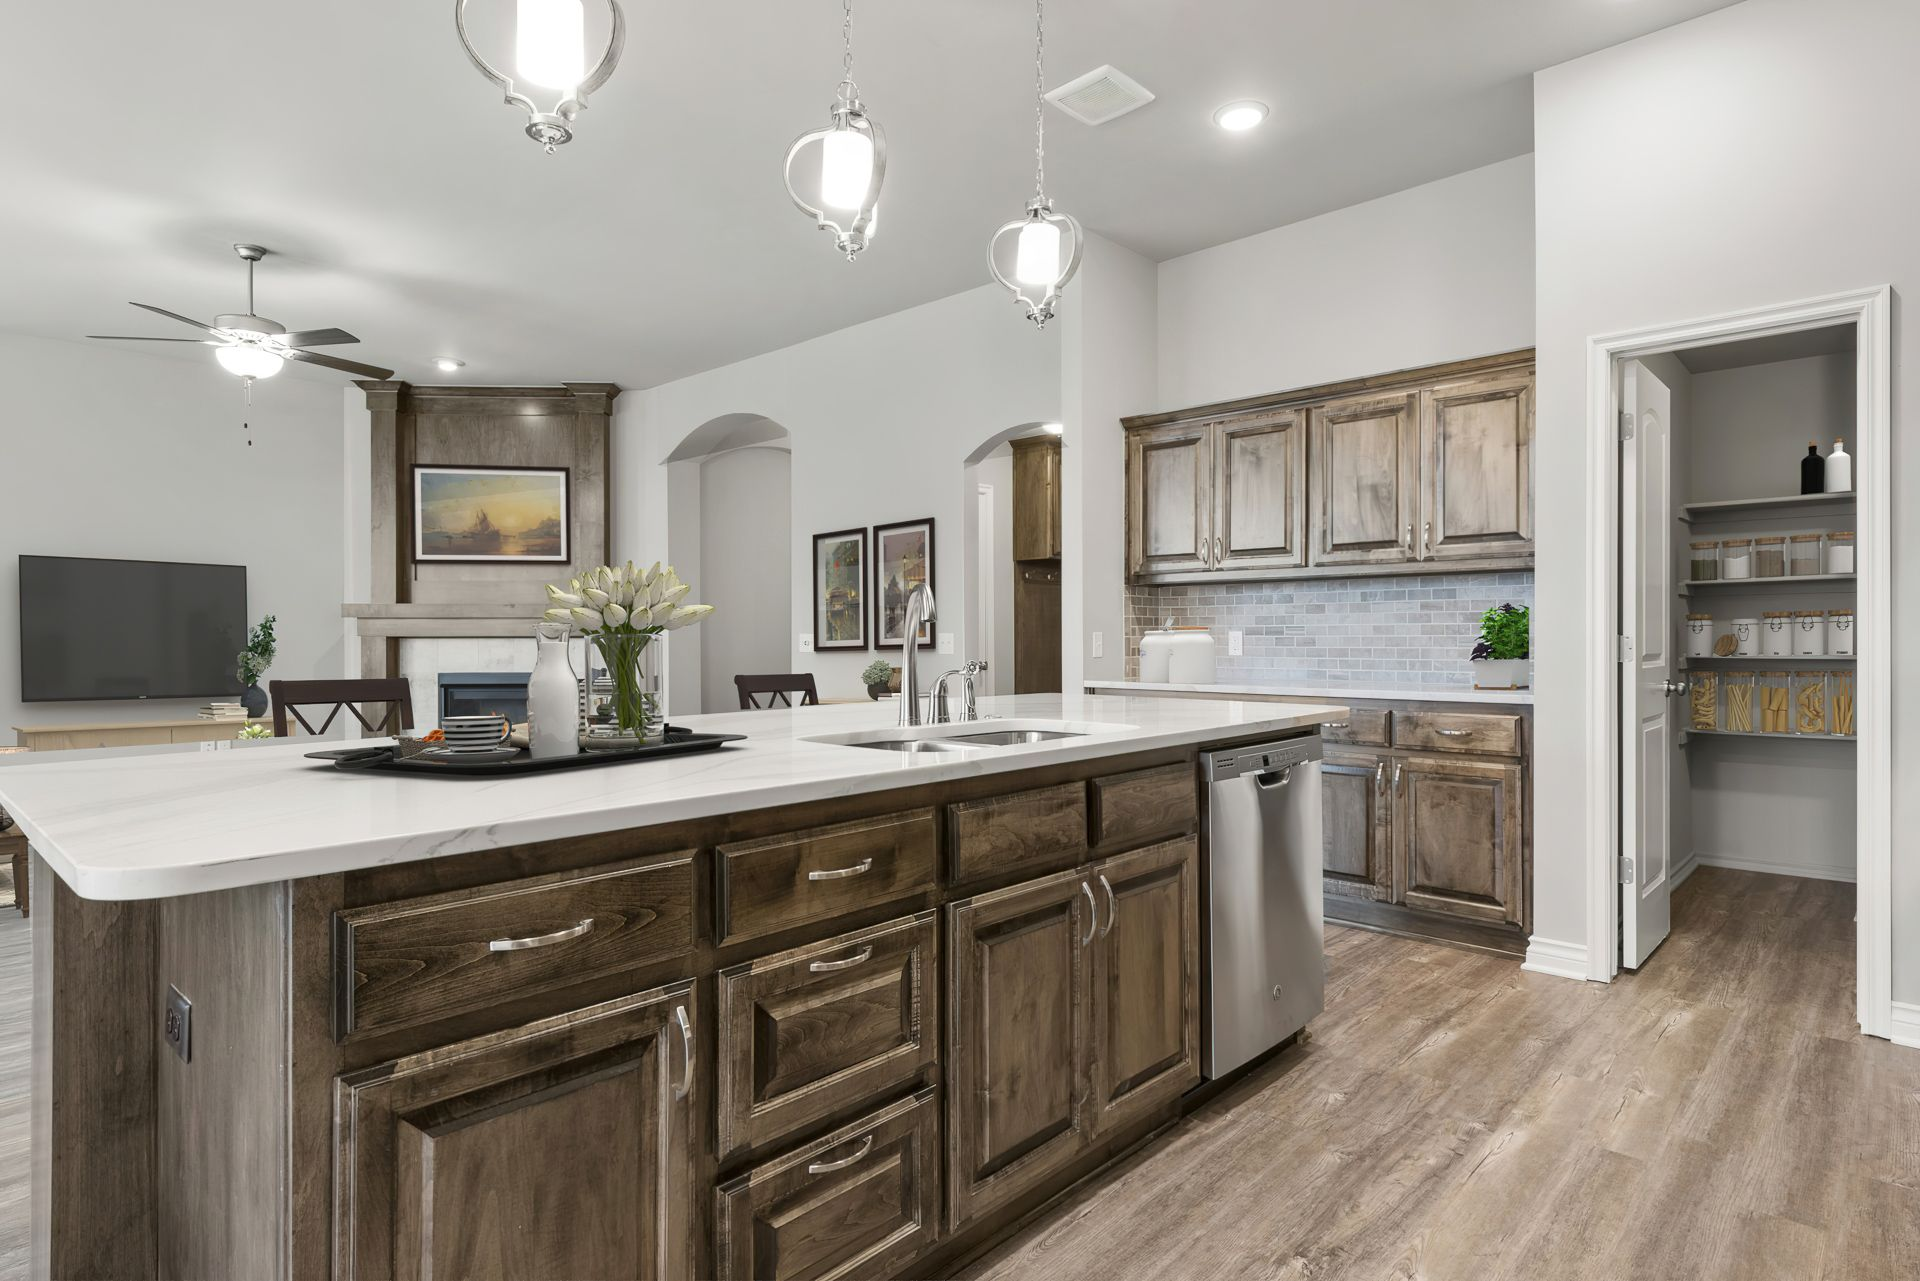 Kitchen featured in the Langley 3-Car By Ideal Homes in Oklahoma City, OK